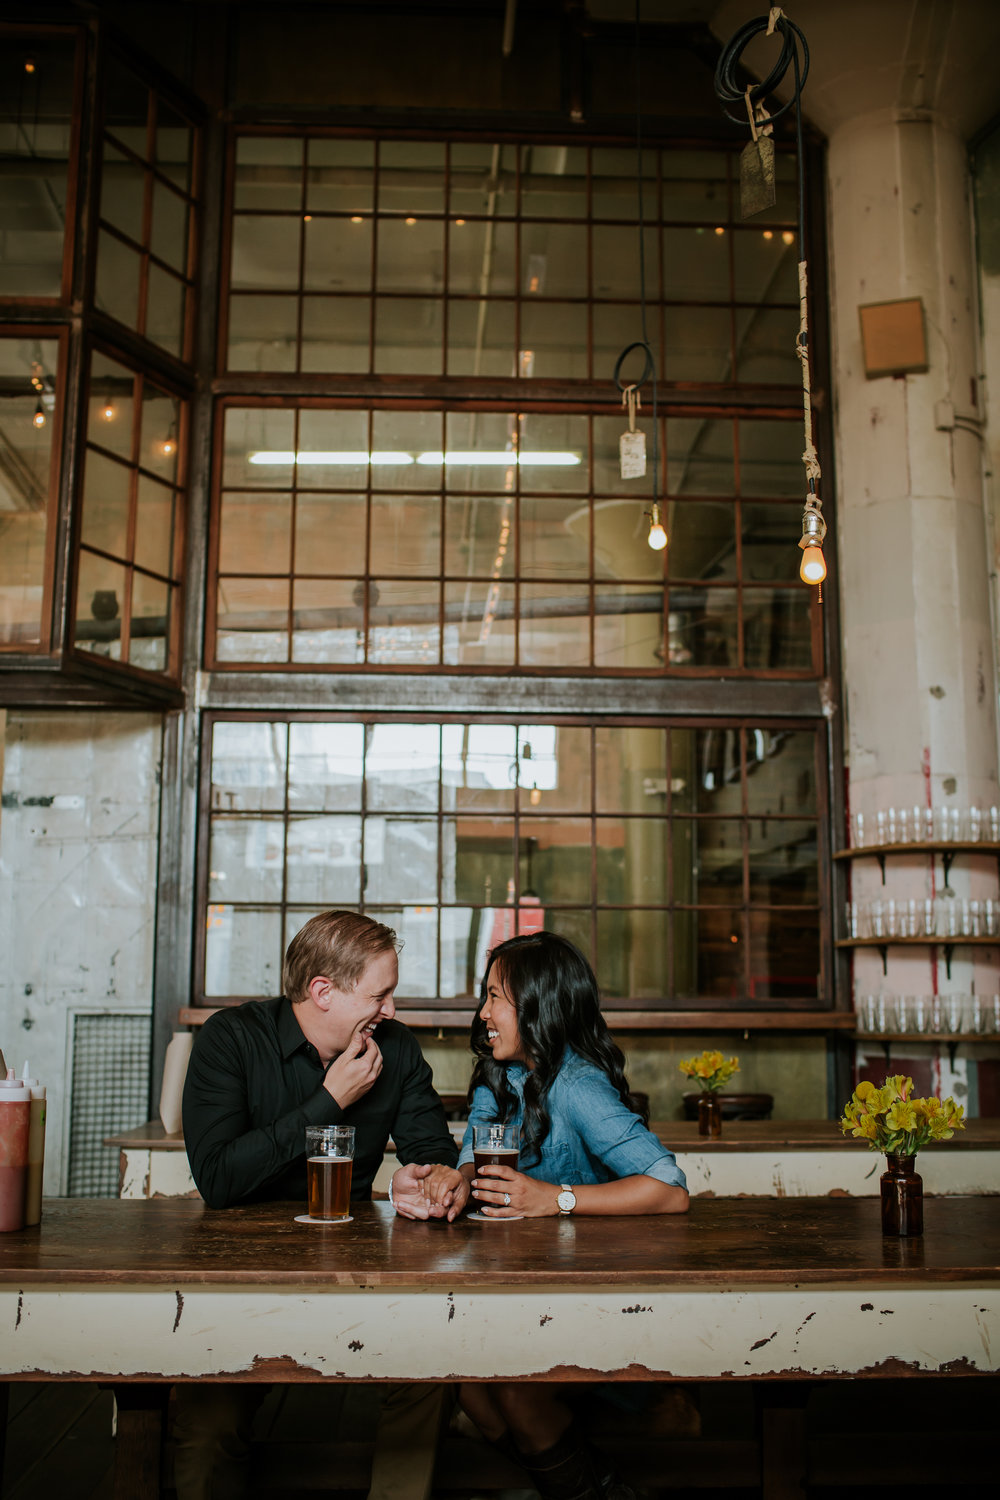 Penney and Chad San Francisco Engagament Session Brewery Mission Dolores_-7.jpg